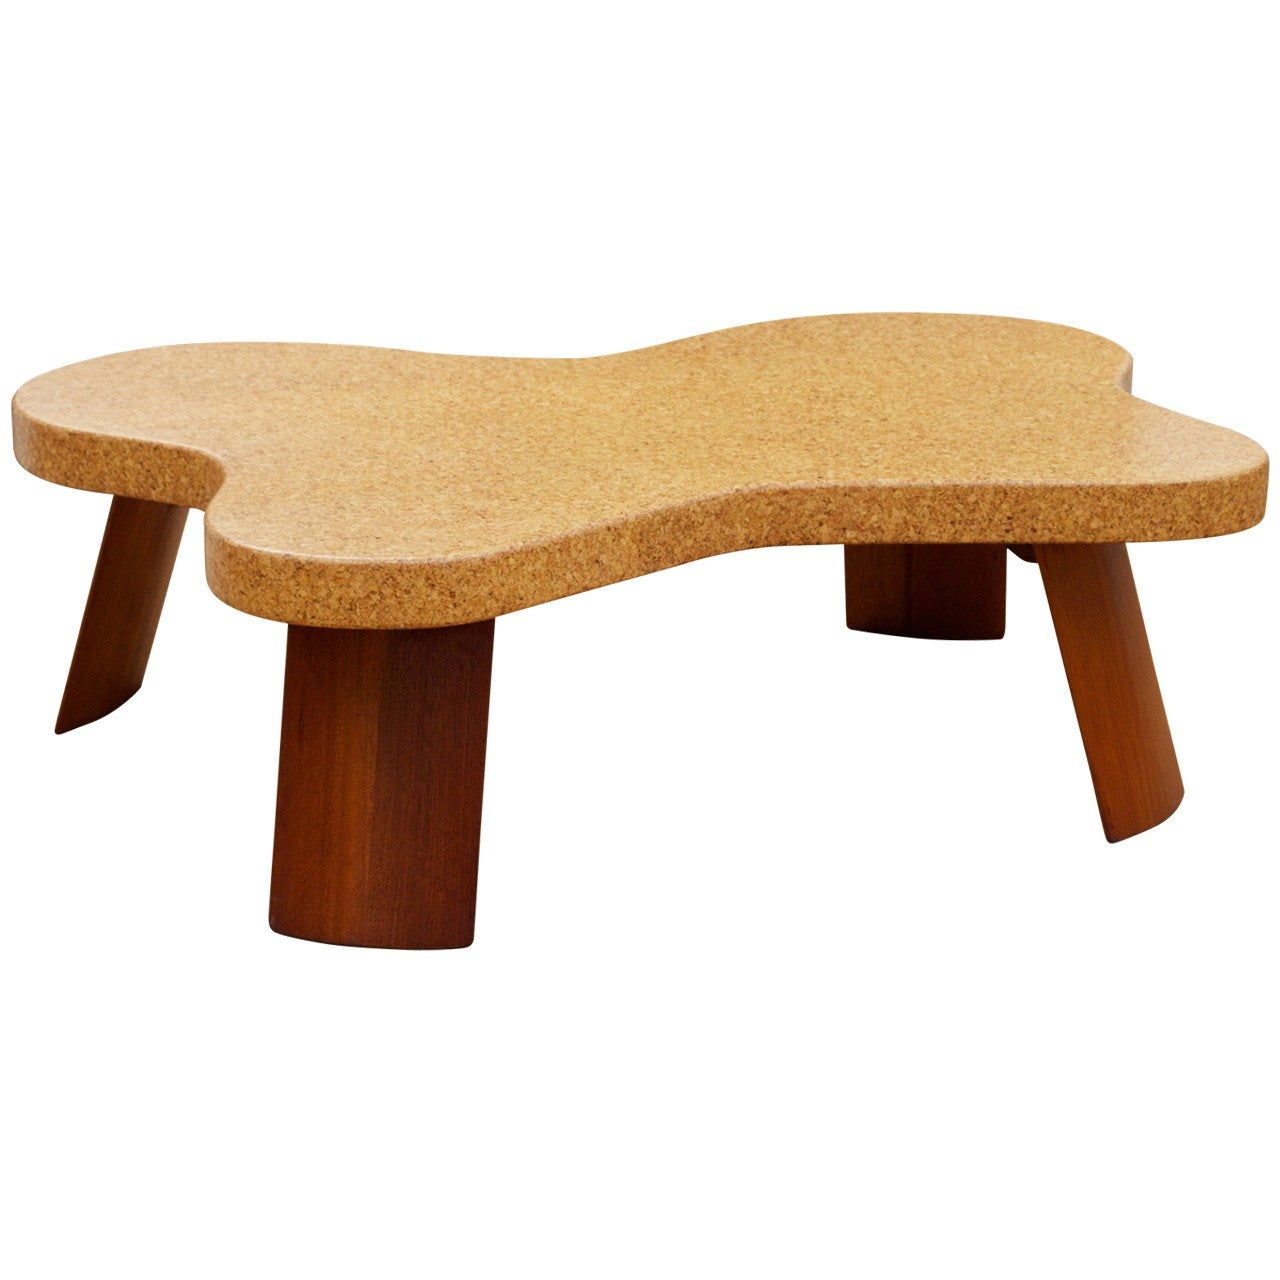 Paul Frankl cork-top coffee table, offered by Almond Hartzog